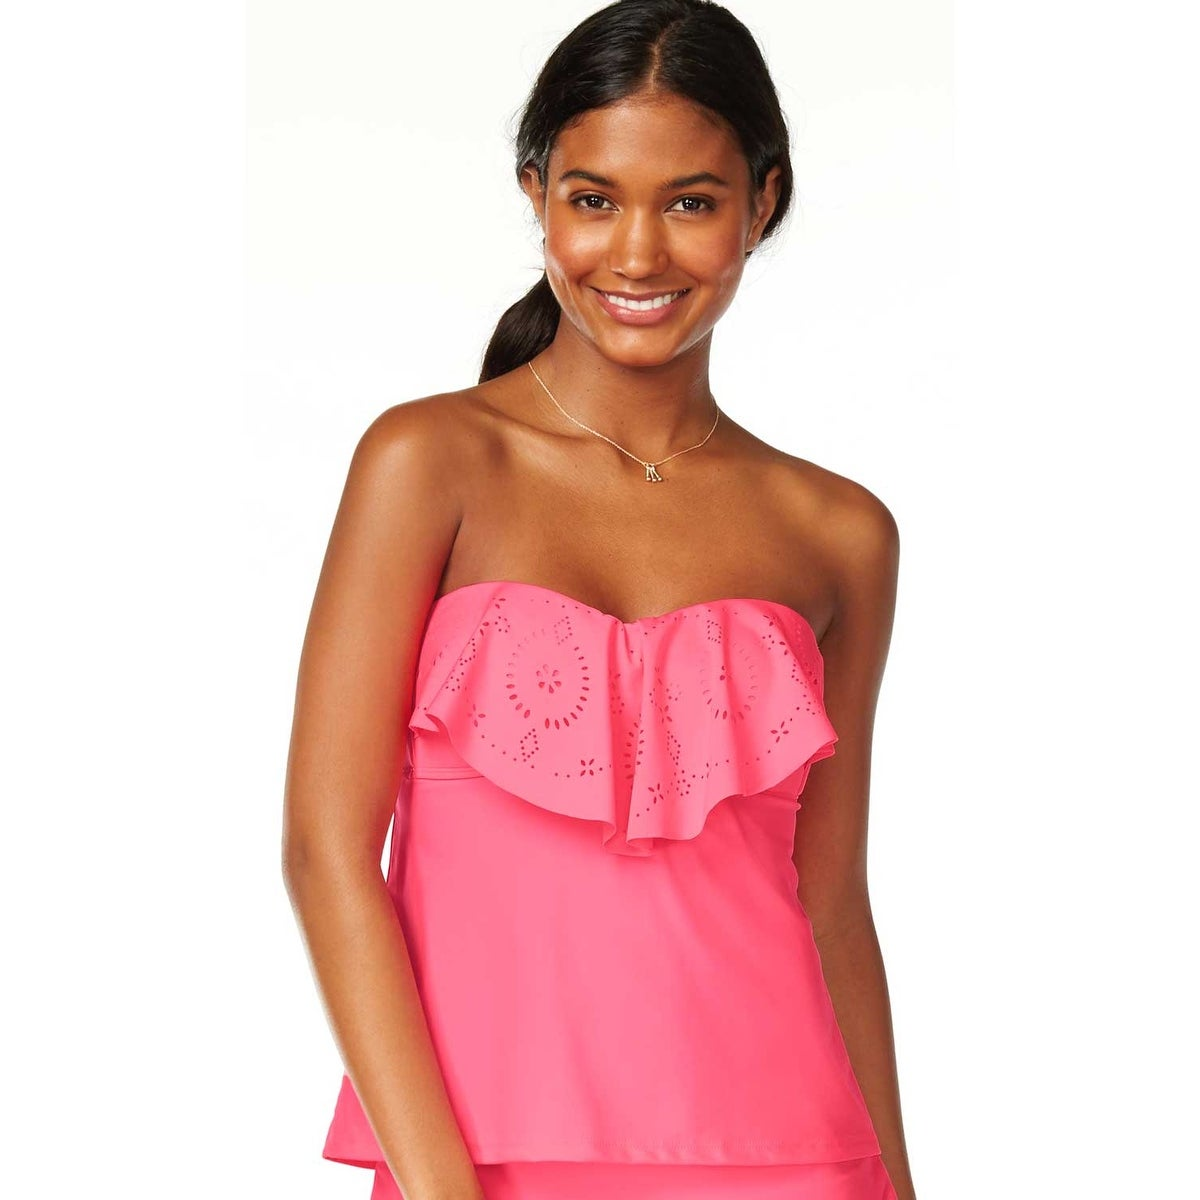 b7ab6879c9836 Shop Hula Honey Womens Swimsuit Tankini Top Small S Pink Flounce Bandeau - Free  Shipping On Orders Over $45 - Overstock - 20558956